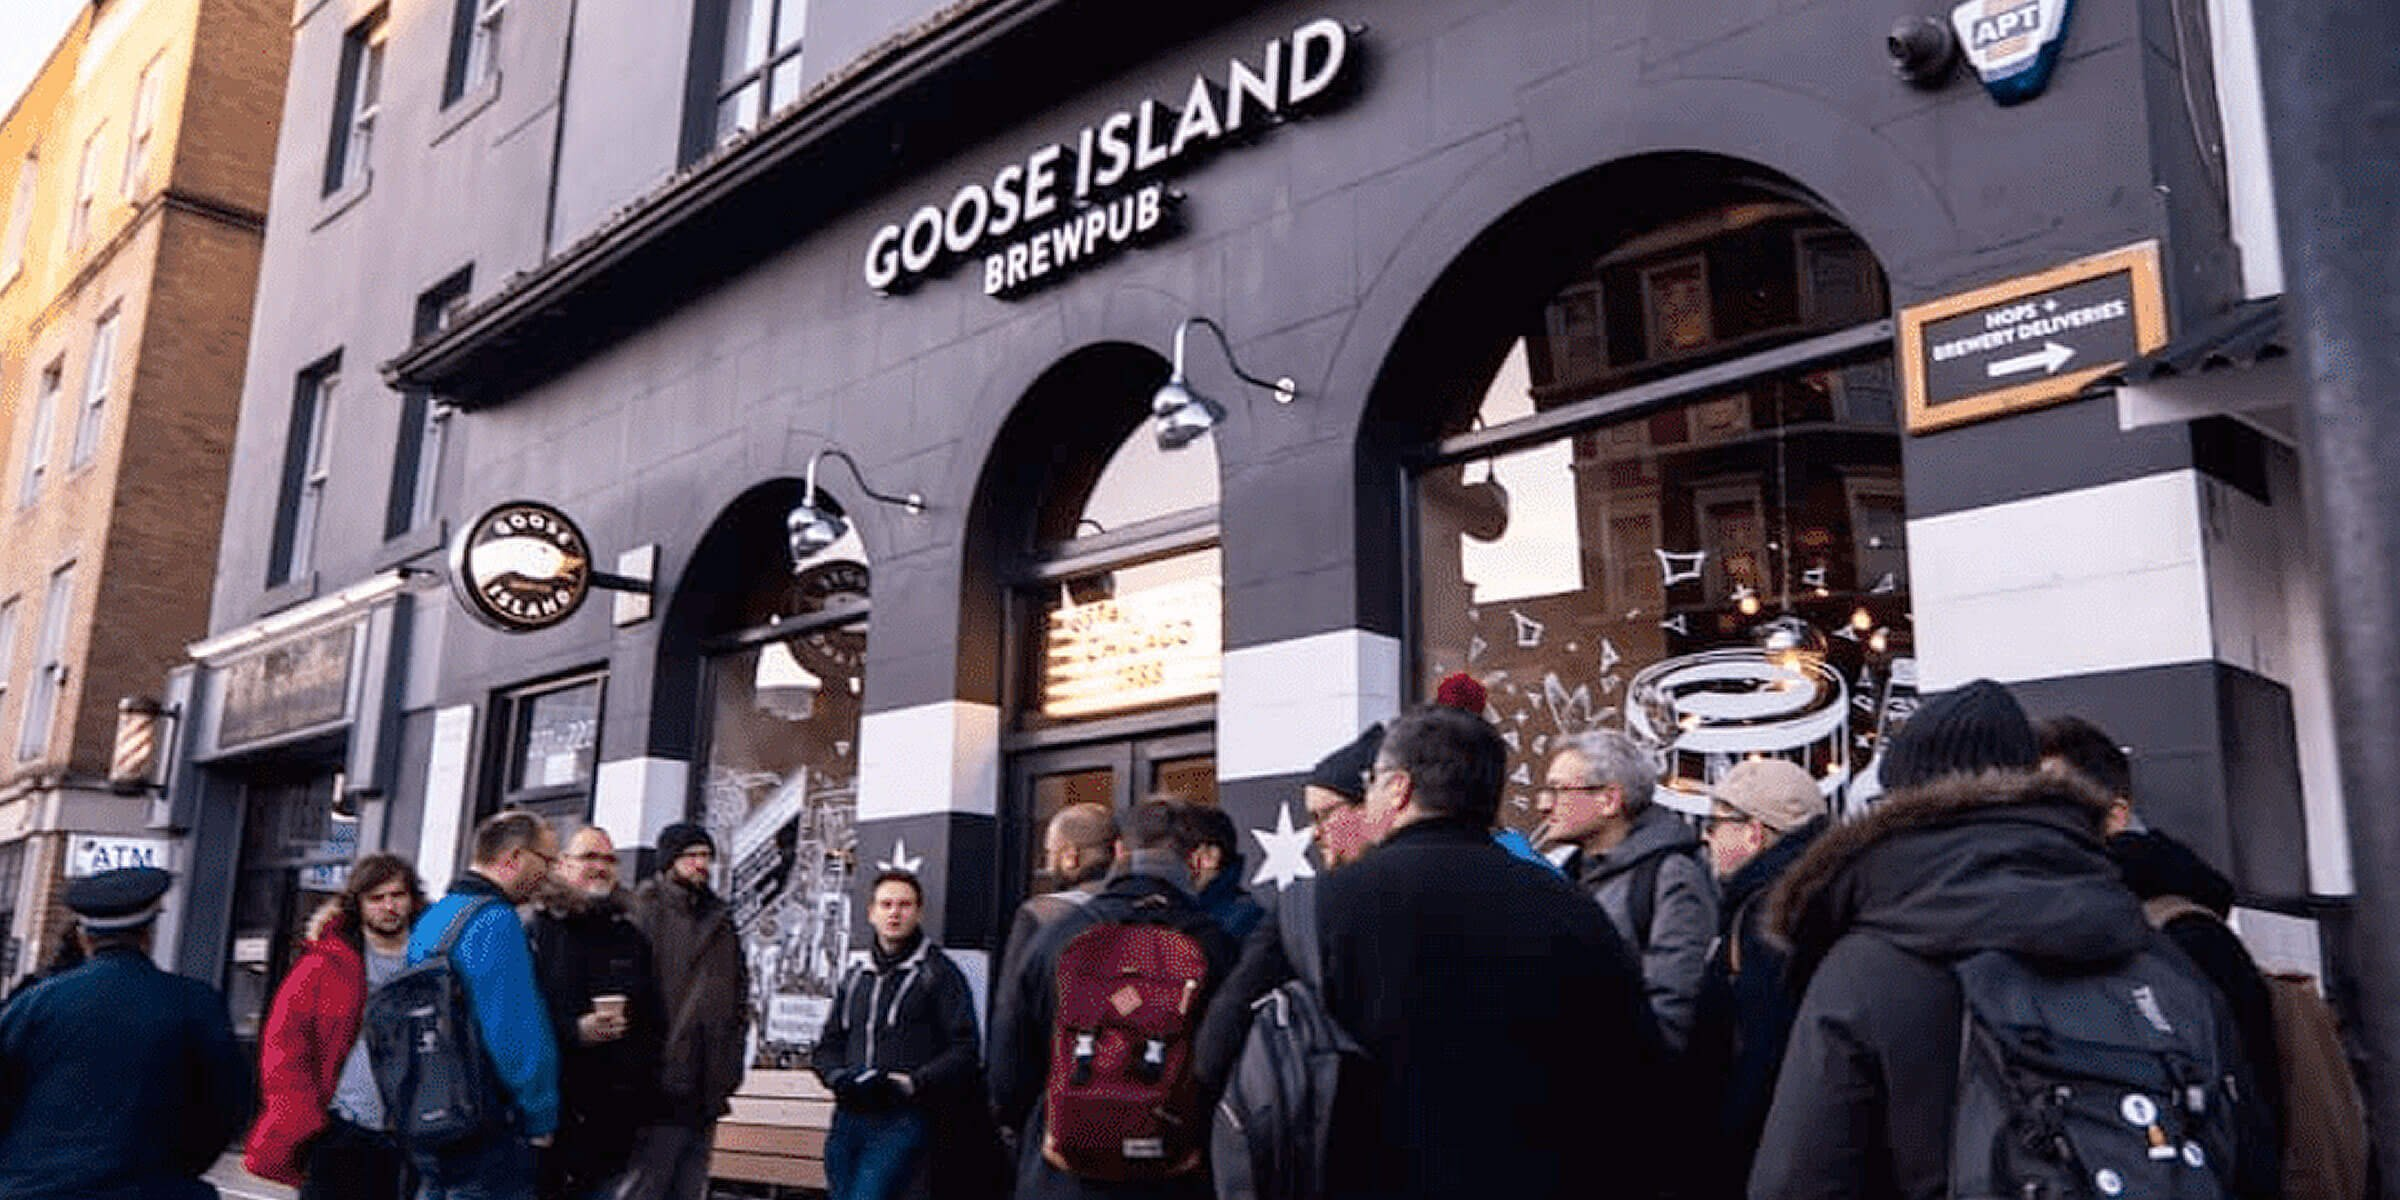 Outside the entrance to the Goose Island Beer Co. brewpub in London, United Kingdom